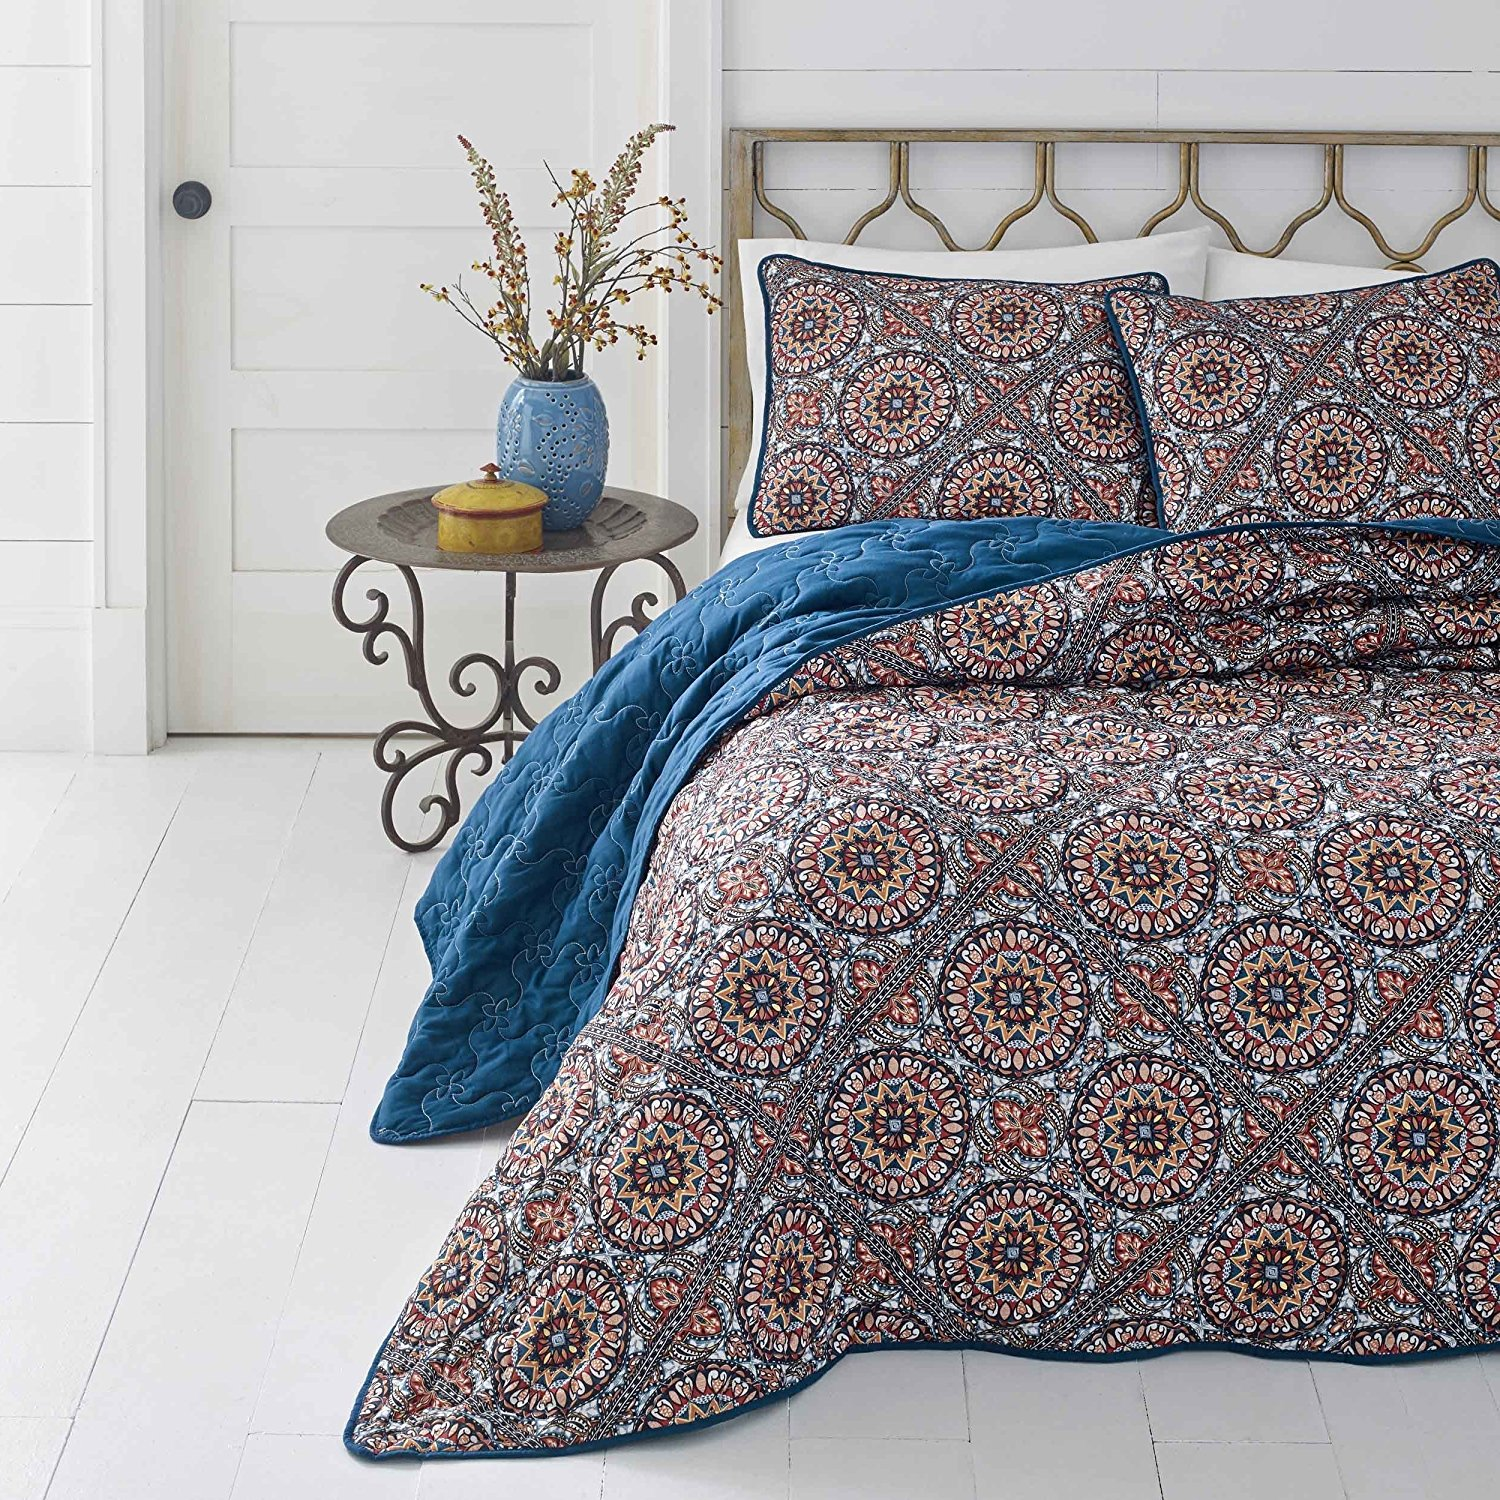 3 Piece Girls Red Blue Medallion Theme Quilt King Set, Elegance All Over Bohemian Indie Bedding, Multi Paisley Mandala Motif Pattern, Solid Boho Chic Printed Reversible Bedding, Vibrant Colors